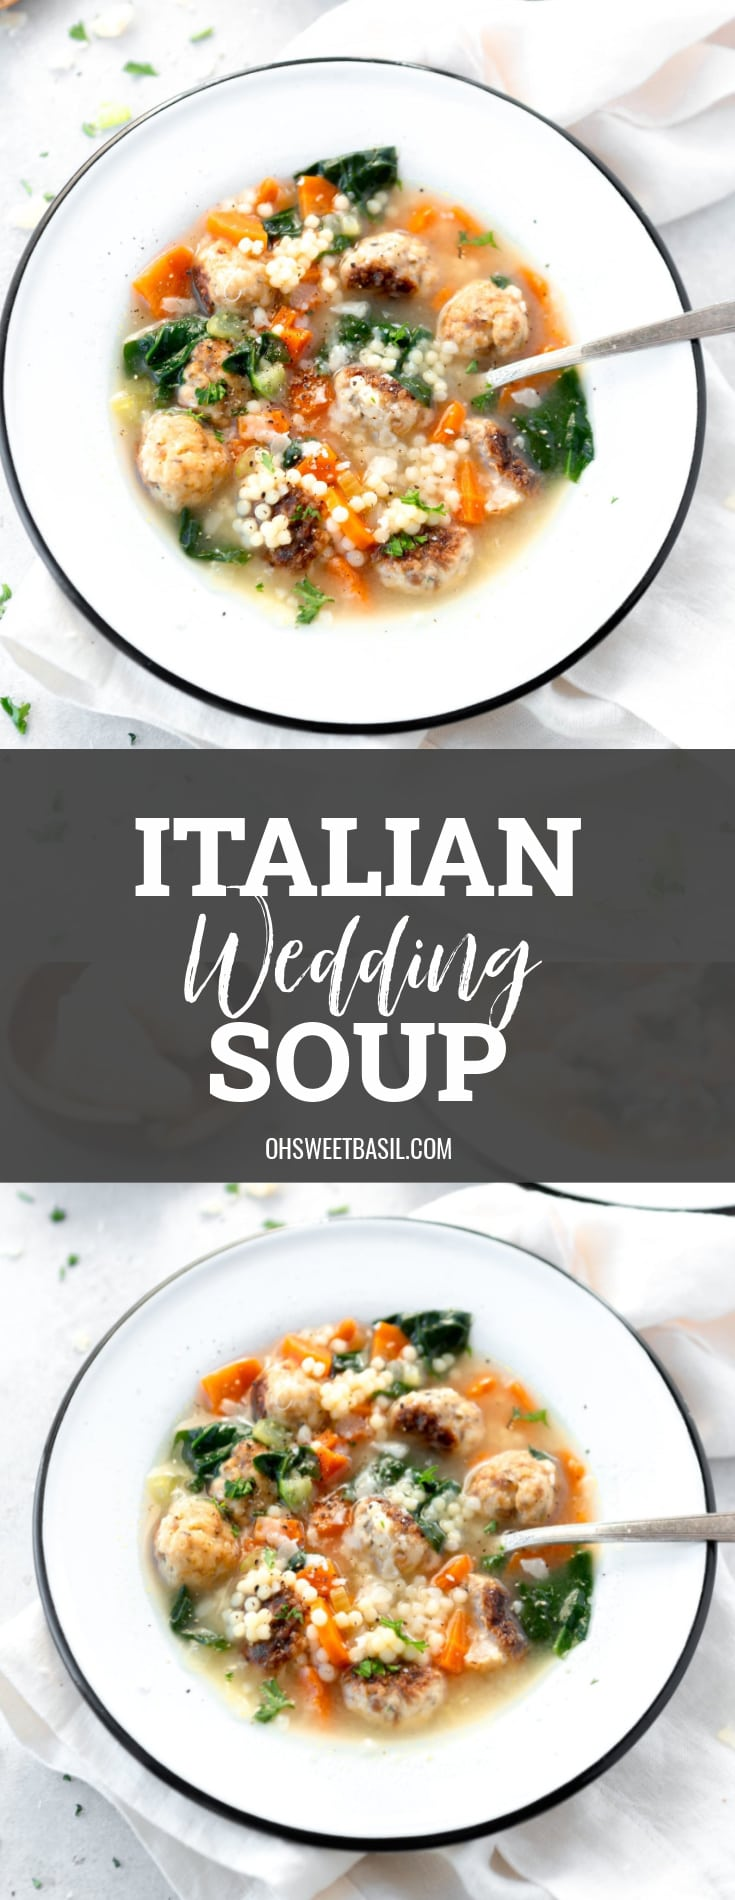 A bowl of Italian wedding soup. A spoon is in the soup and it is packed with meatballs, carrots and spinach.